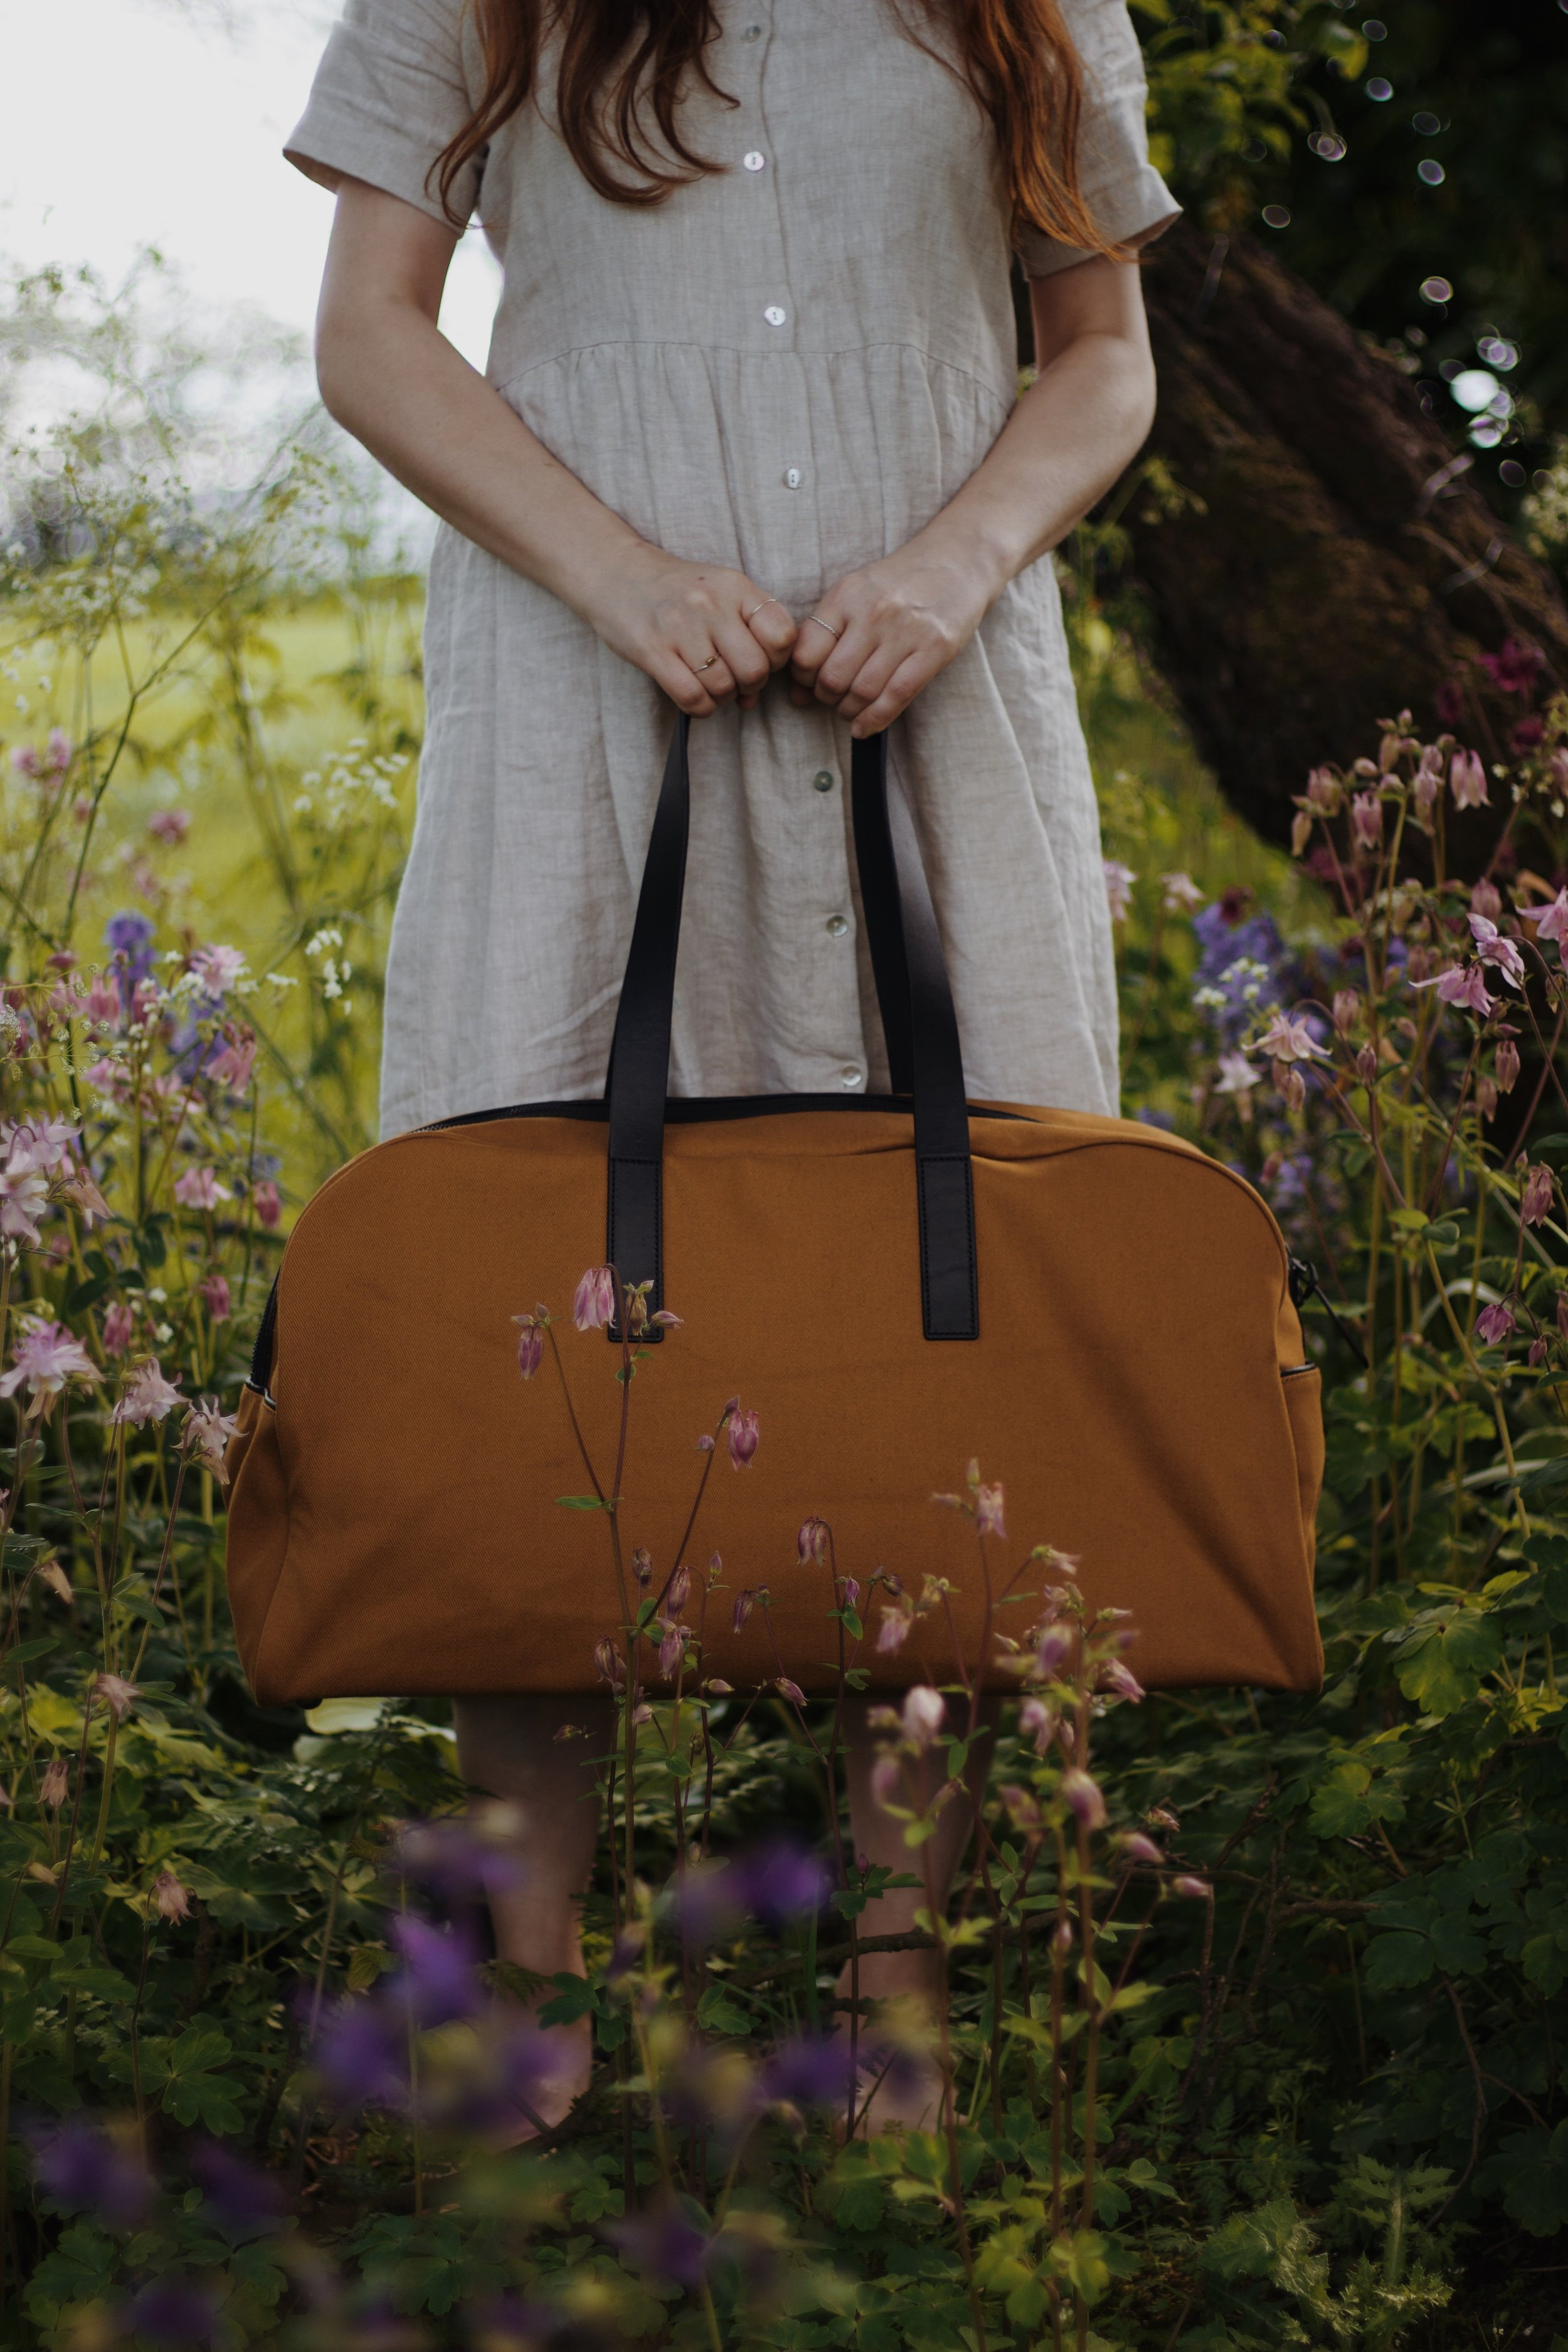 Everlane Twill Weekender Bag, photographed among Spring Wildflowers | Field + Nest